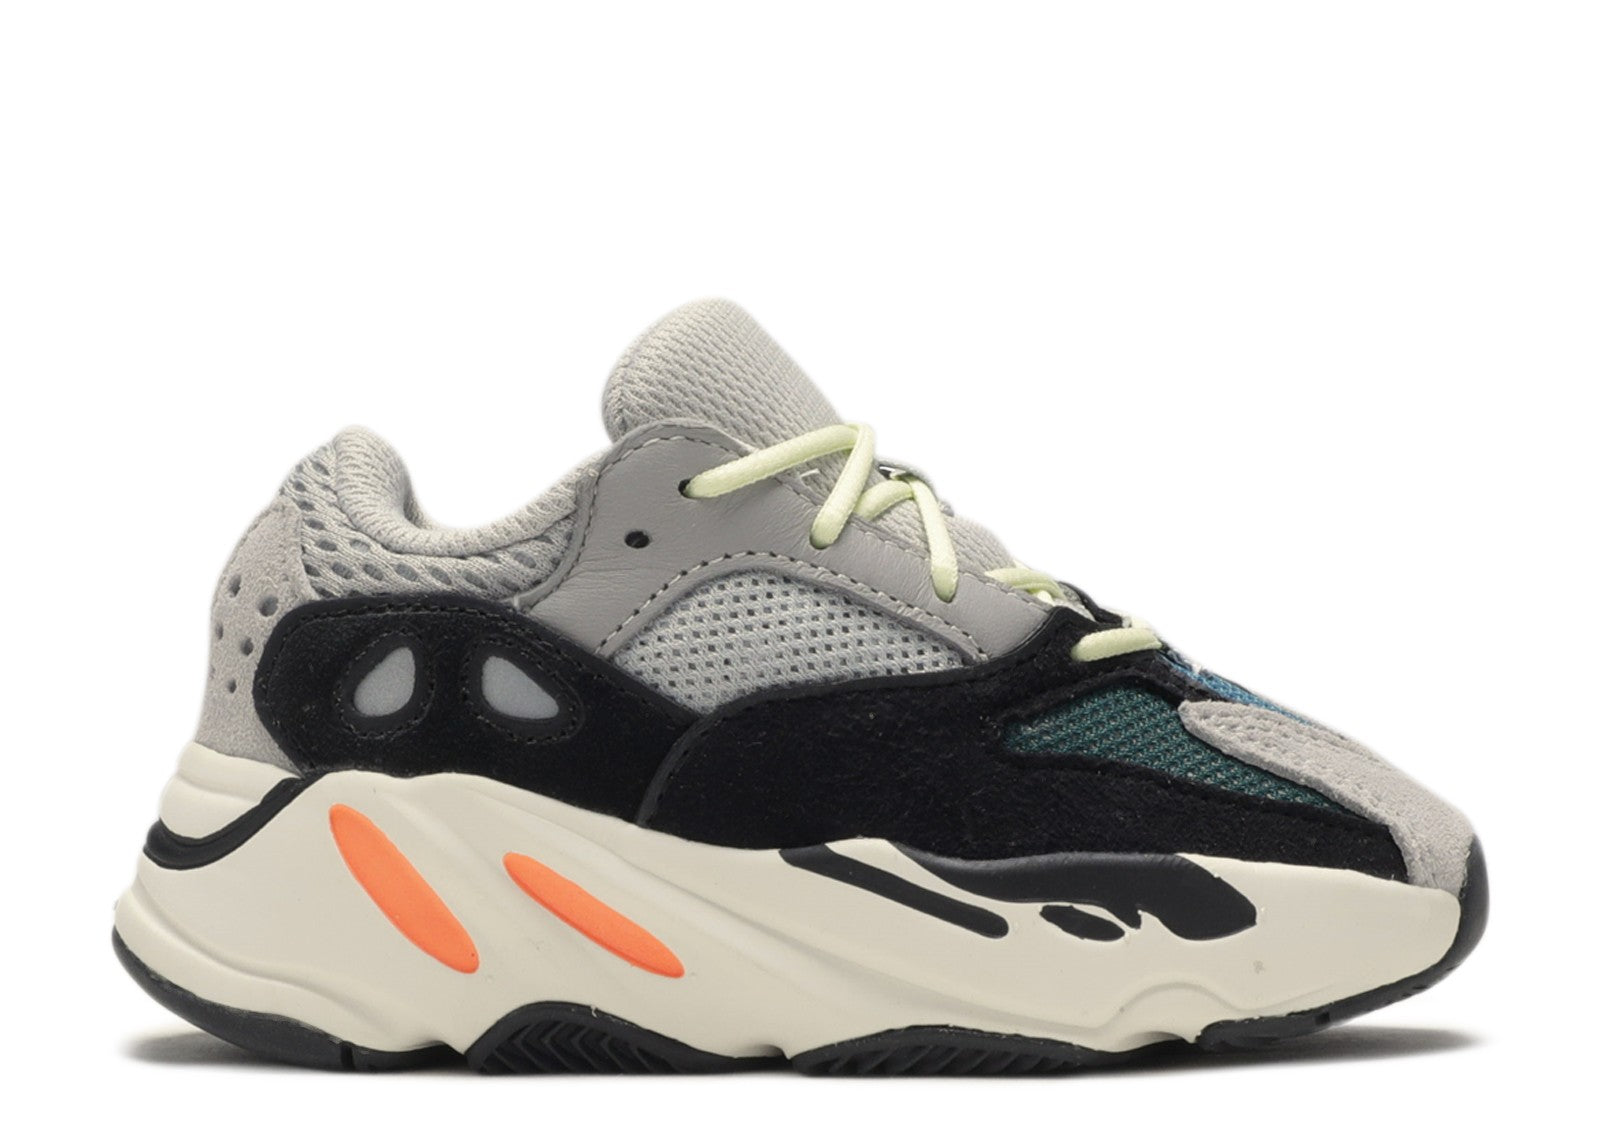 sale retailer b6ae5 f9b16 Yeezy 700 Wave Runner Toddler & Pre School